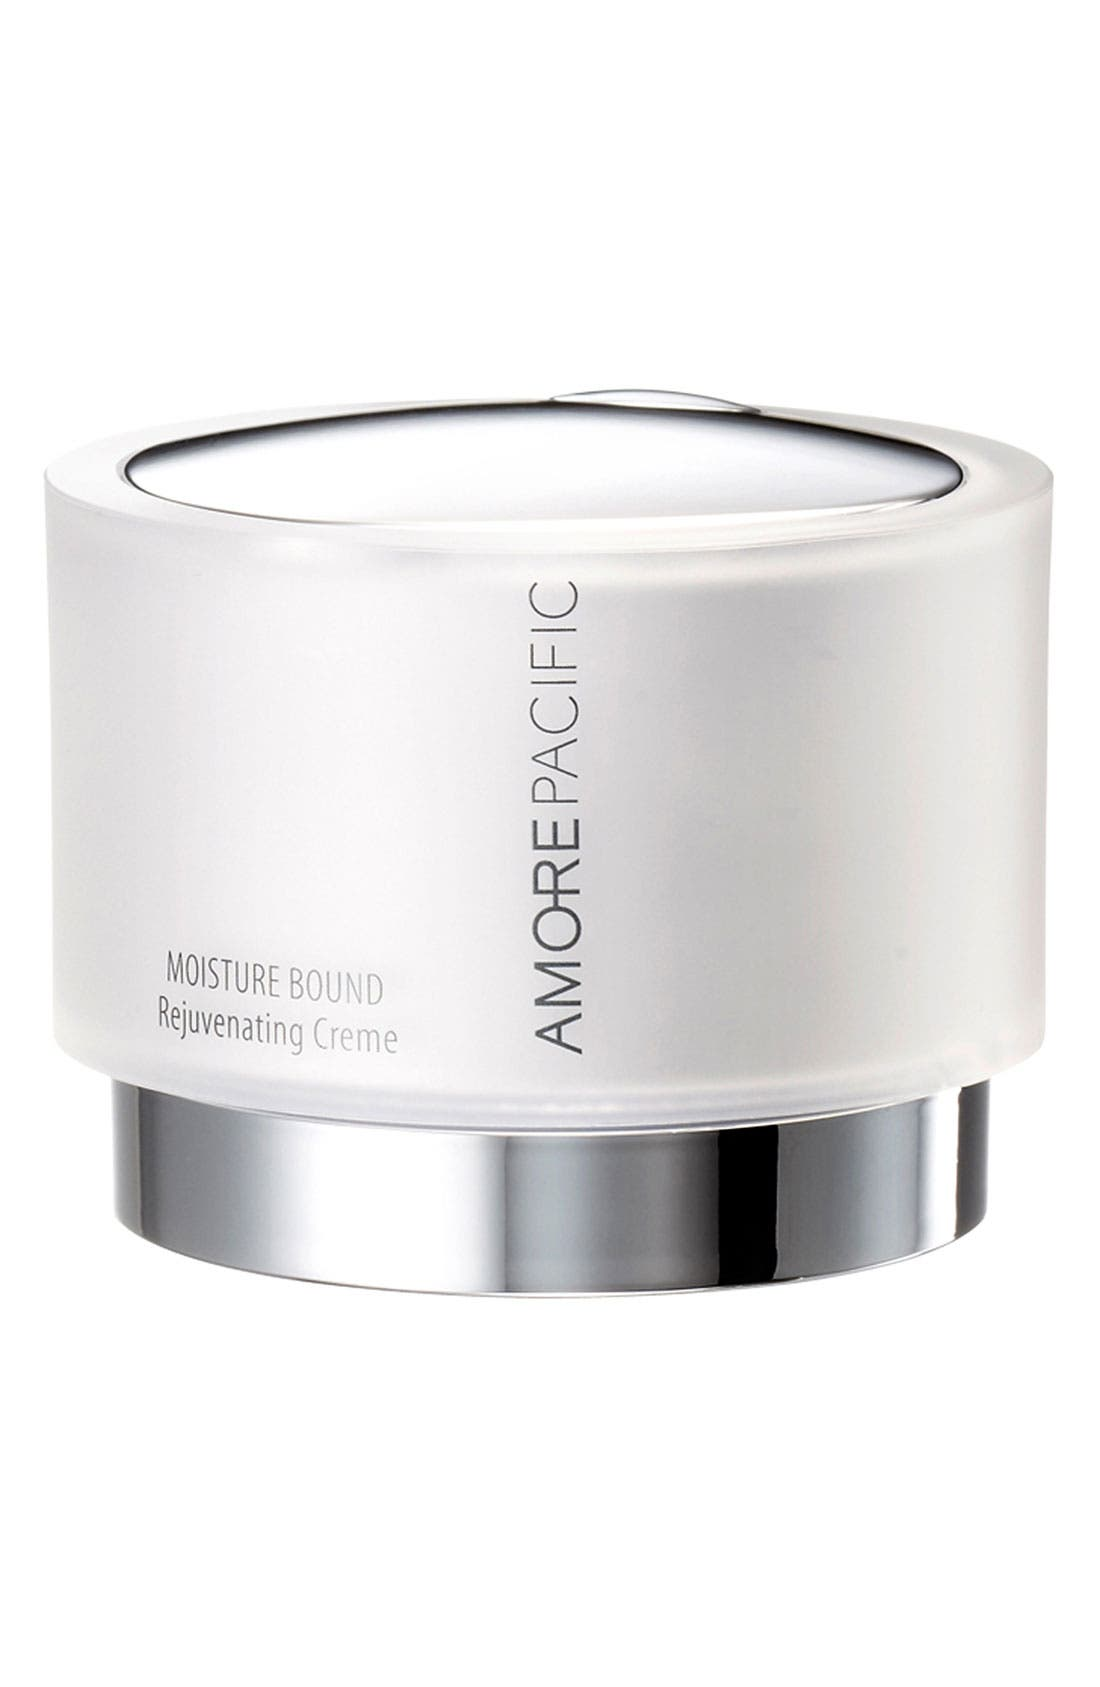 AMOREPACIFIC 'Moisture Bound' Rejuvenating Crème